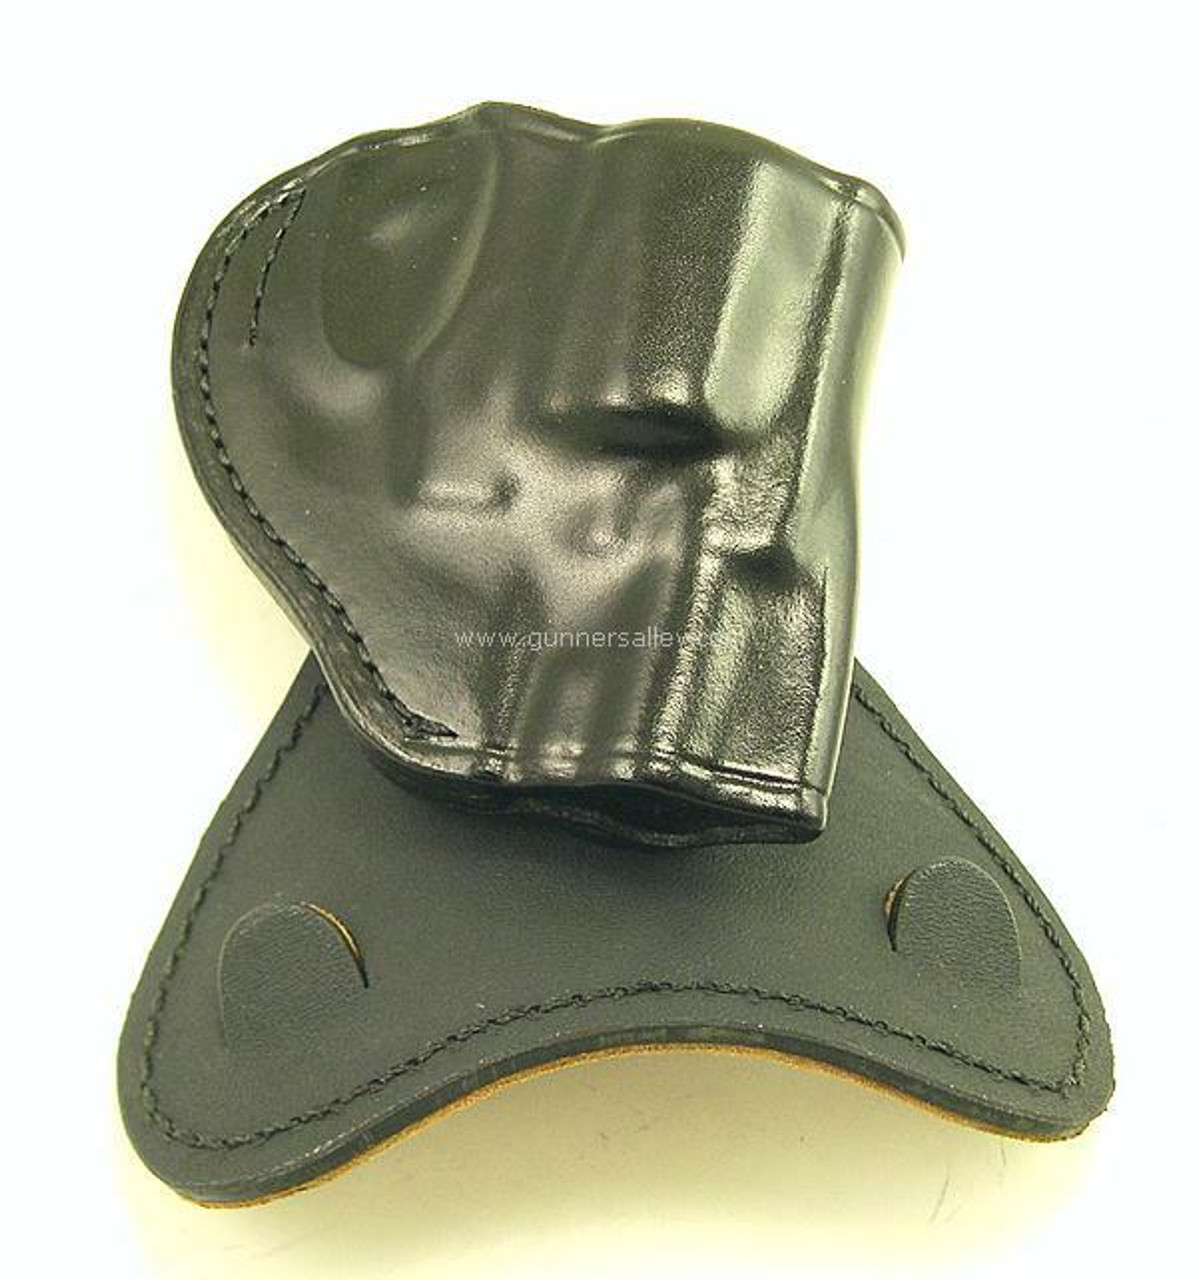 Right Hand Black Model for a S&W J frame 2 inch